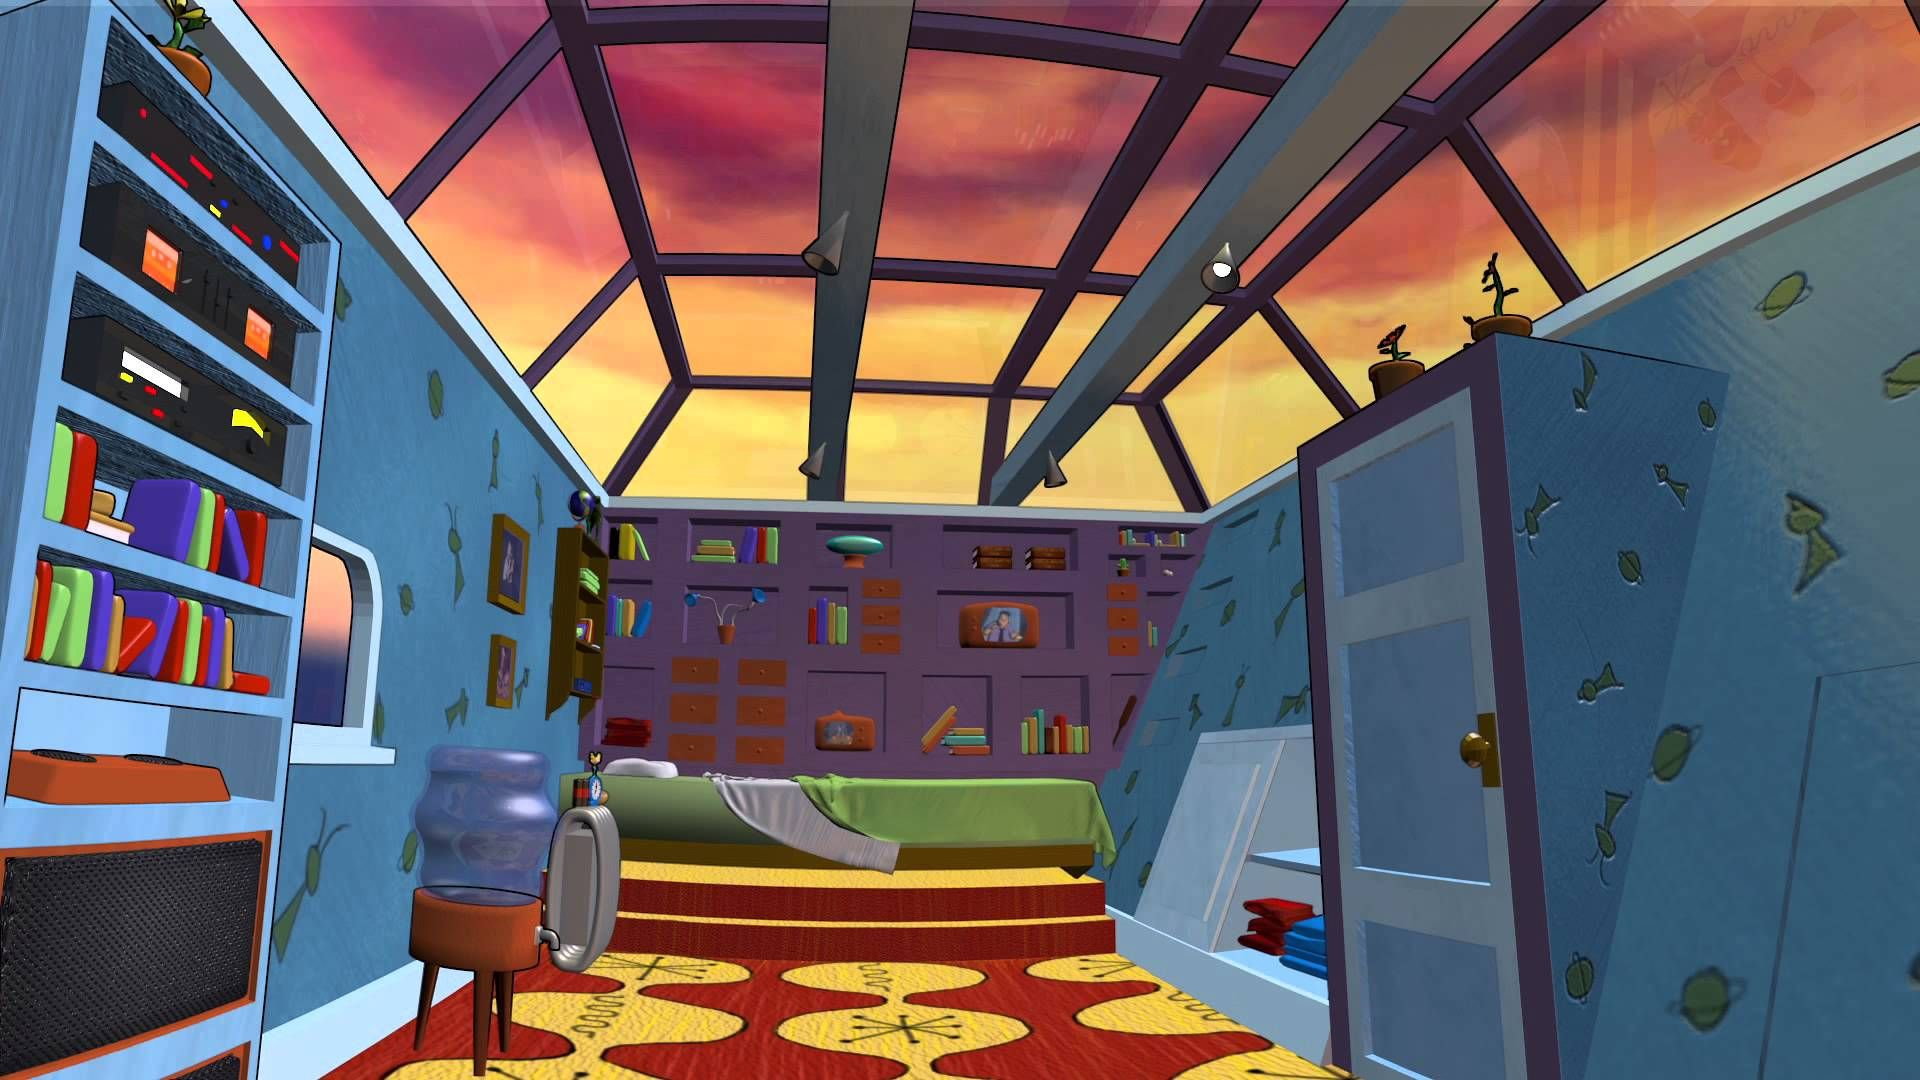 arnold house tour video (With images) | Hey arnold, Arnold ...